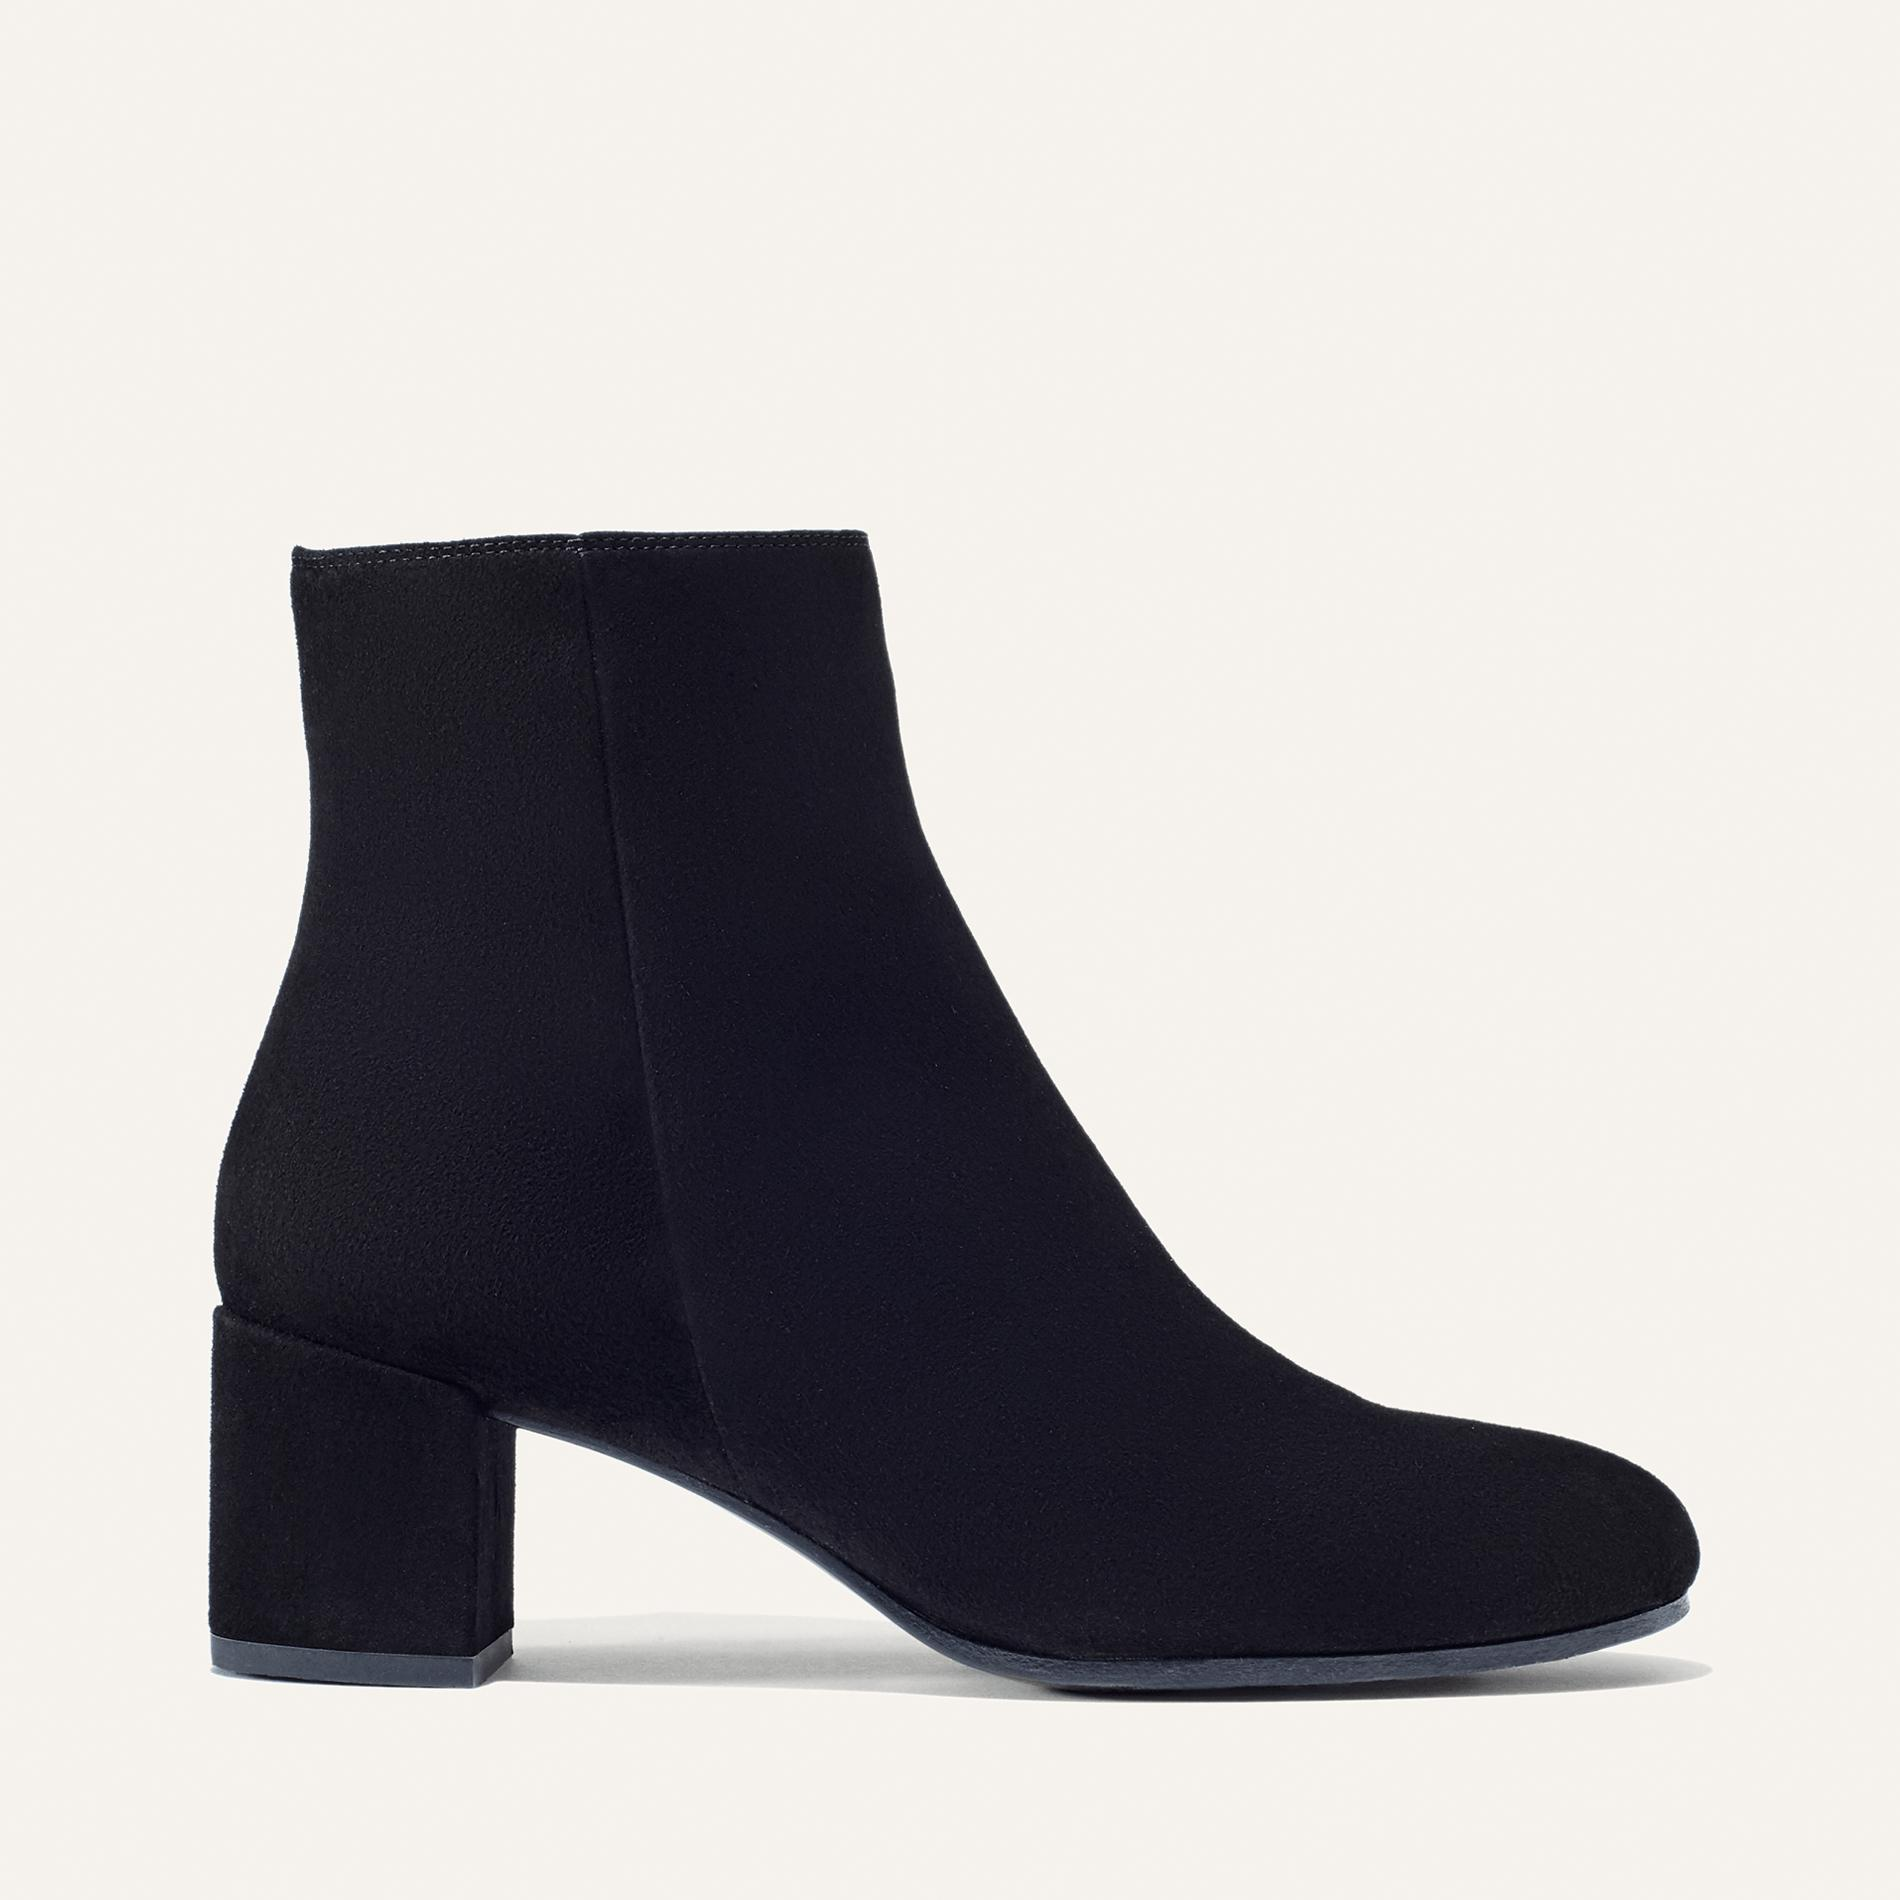 The Boot - Black